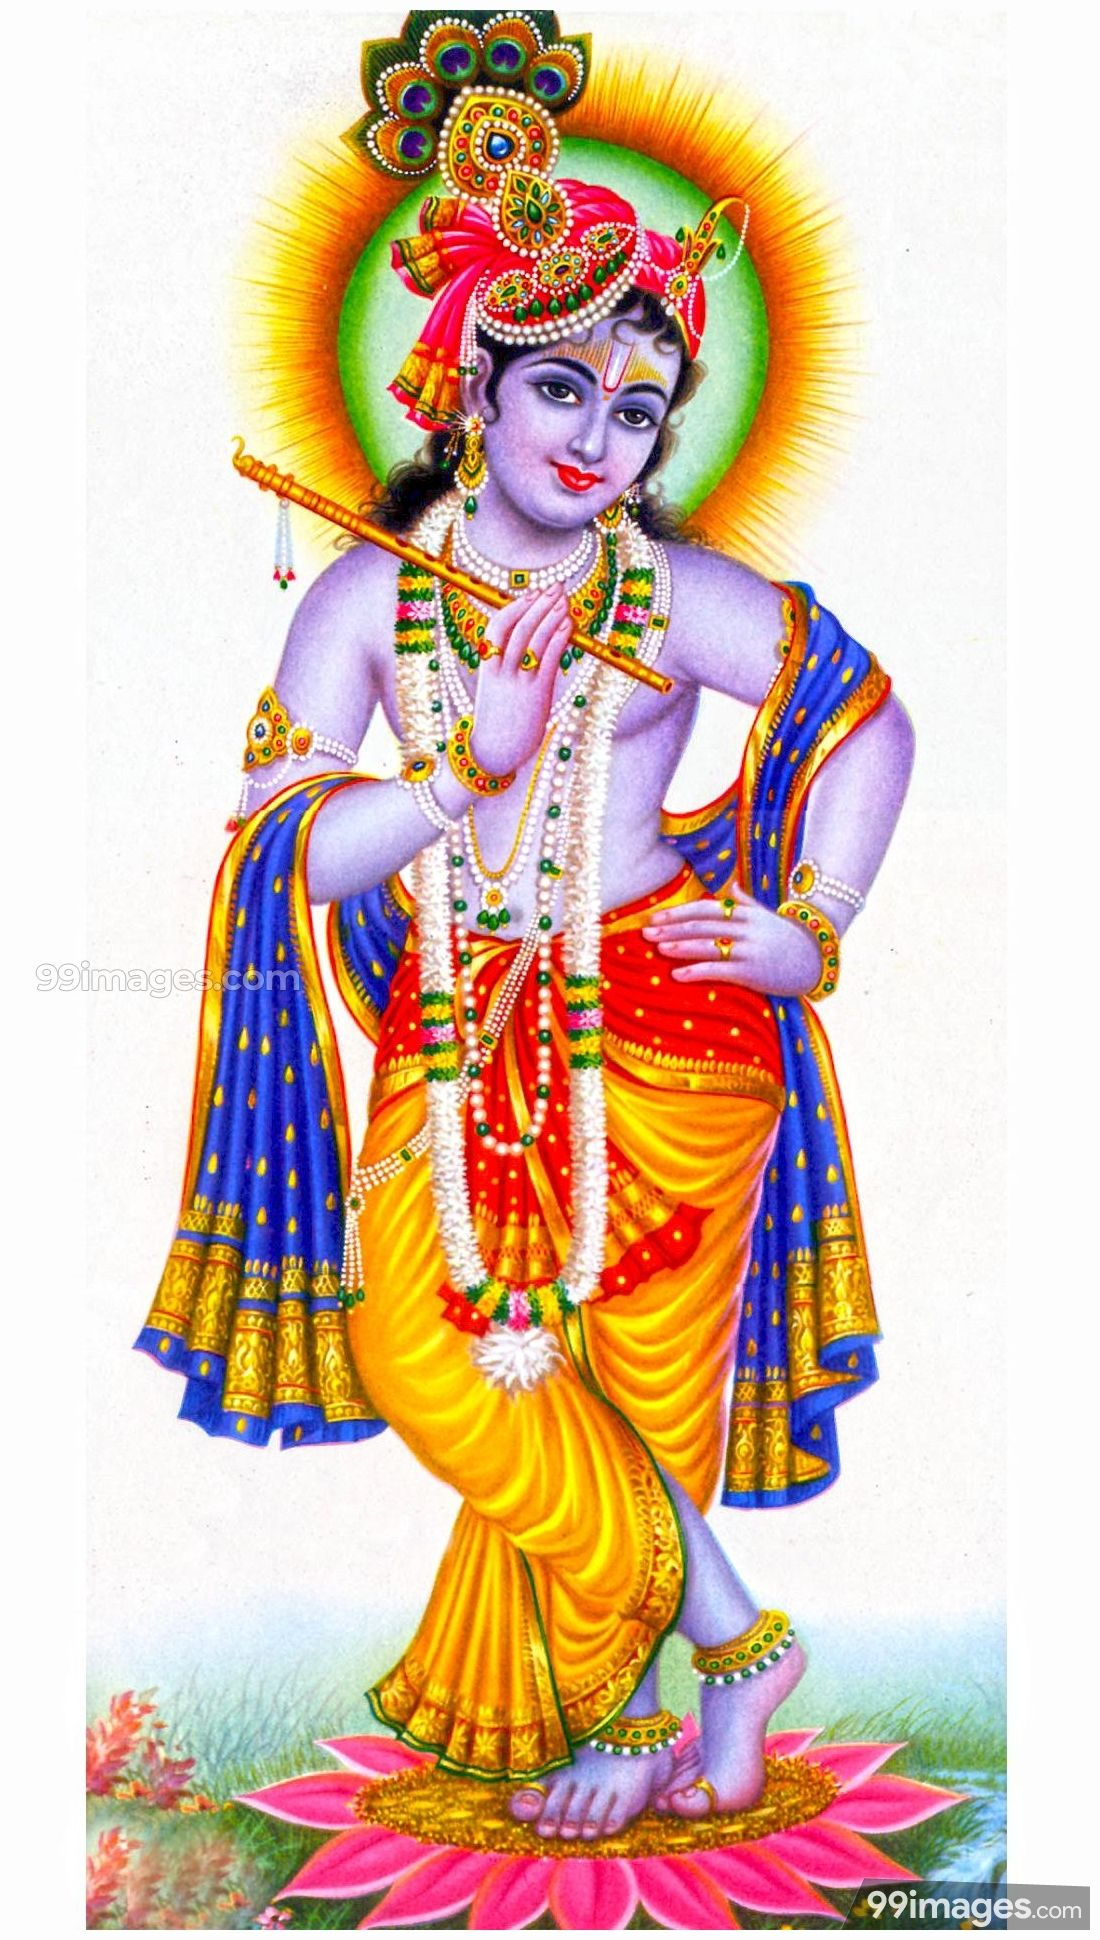 140 Lord Krishna Images Hd Photos 1080p Wallpapers